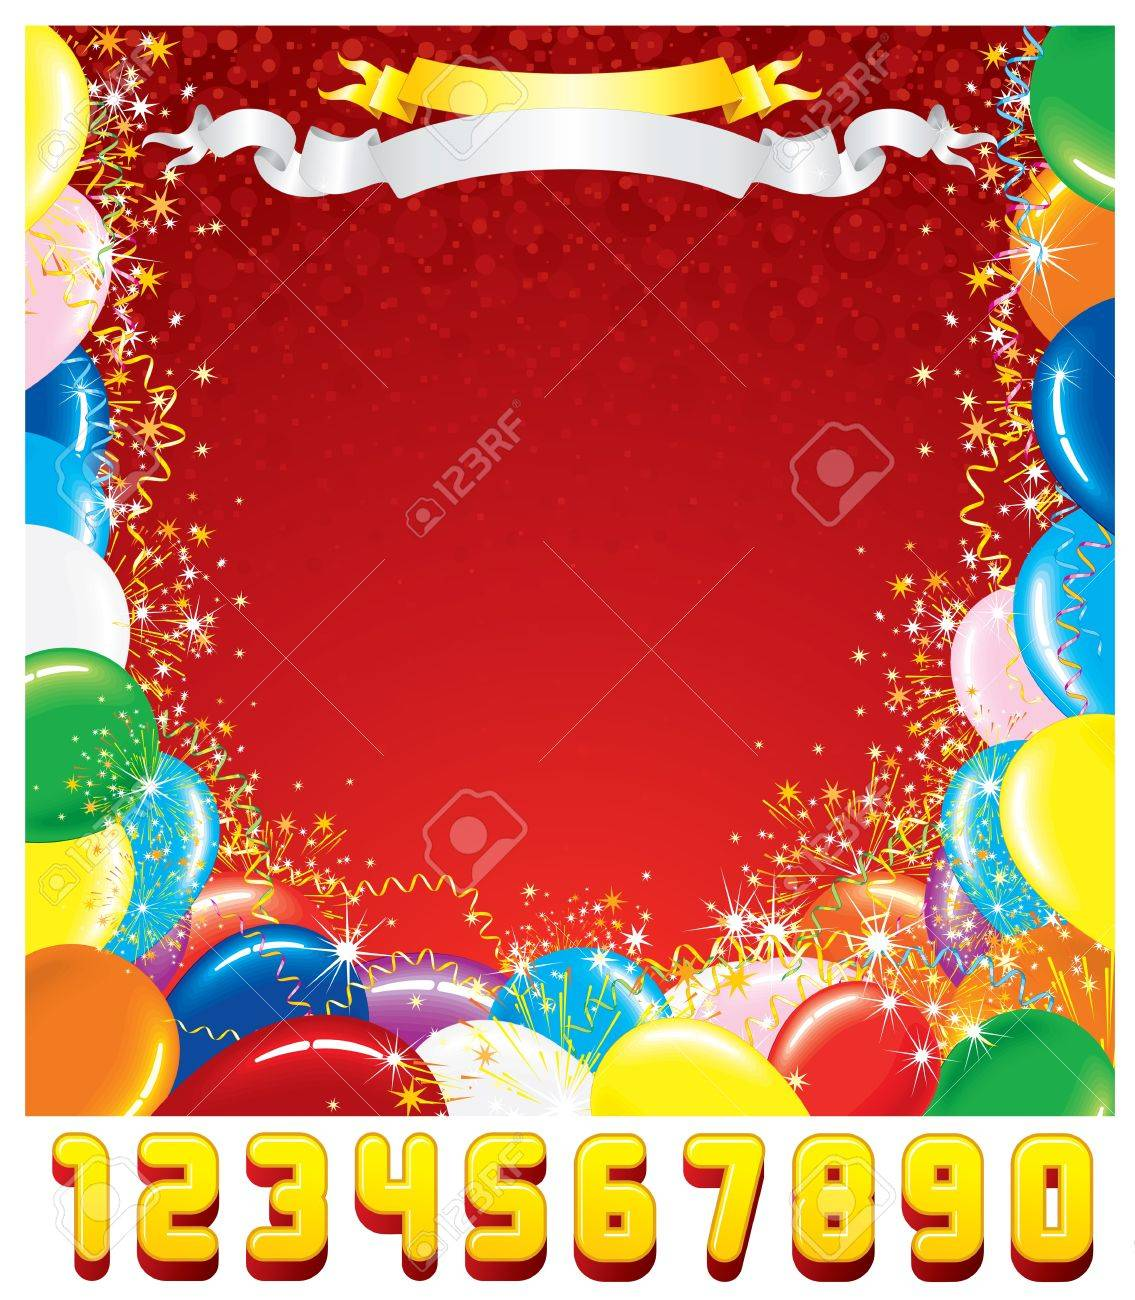 Customizable greeting card festive birthday background with customizable greeting card festive birthday background with set of shiny numbers create your own birthday card kristyandbryce Images